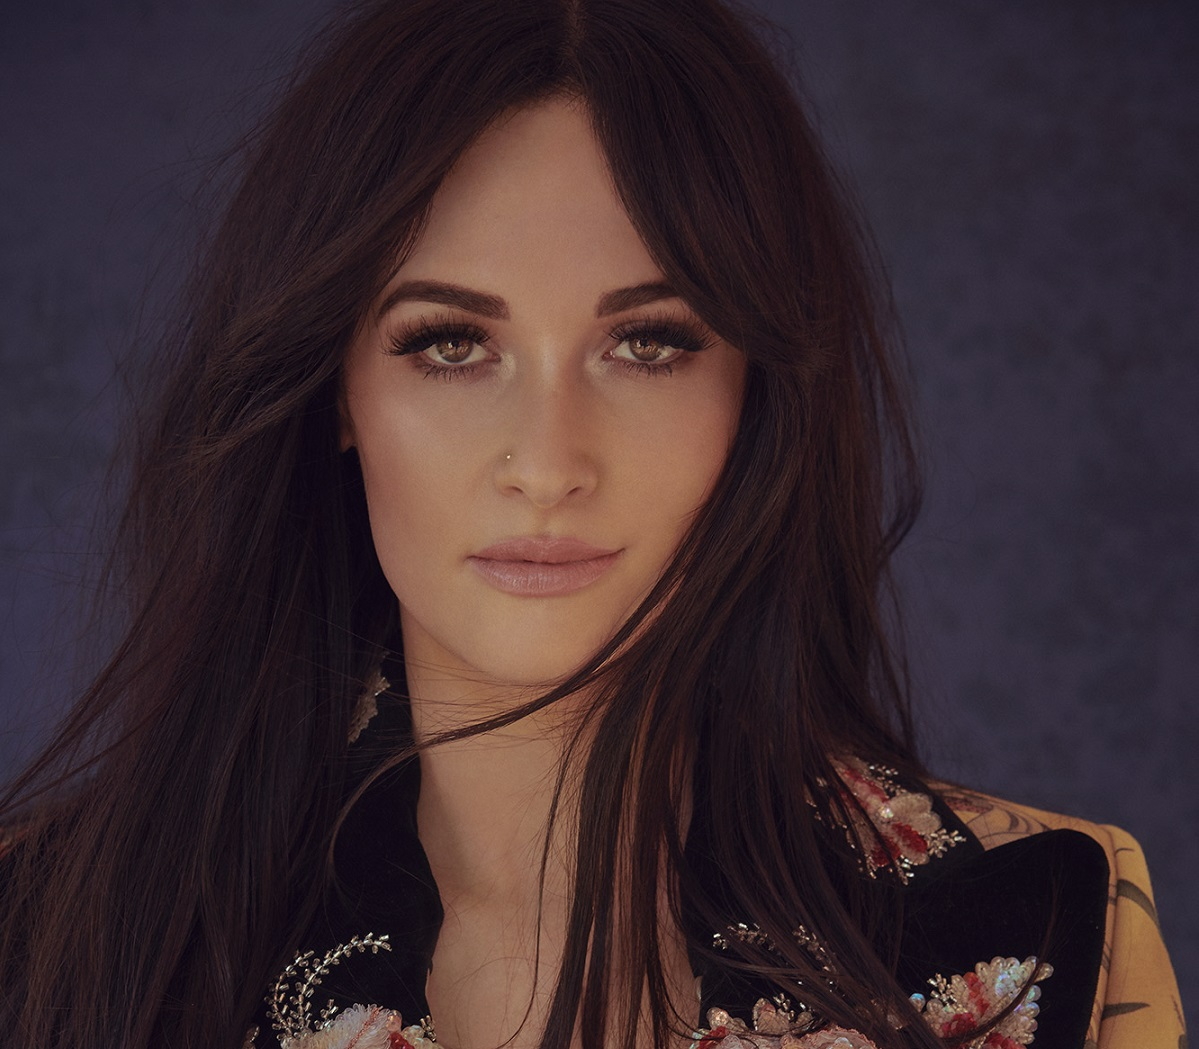 High Horse Kacey Musgraves: Kacey Musgraves Found Inspiration For 'Butterflies' From